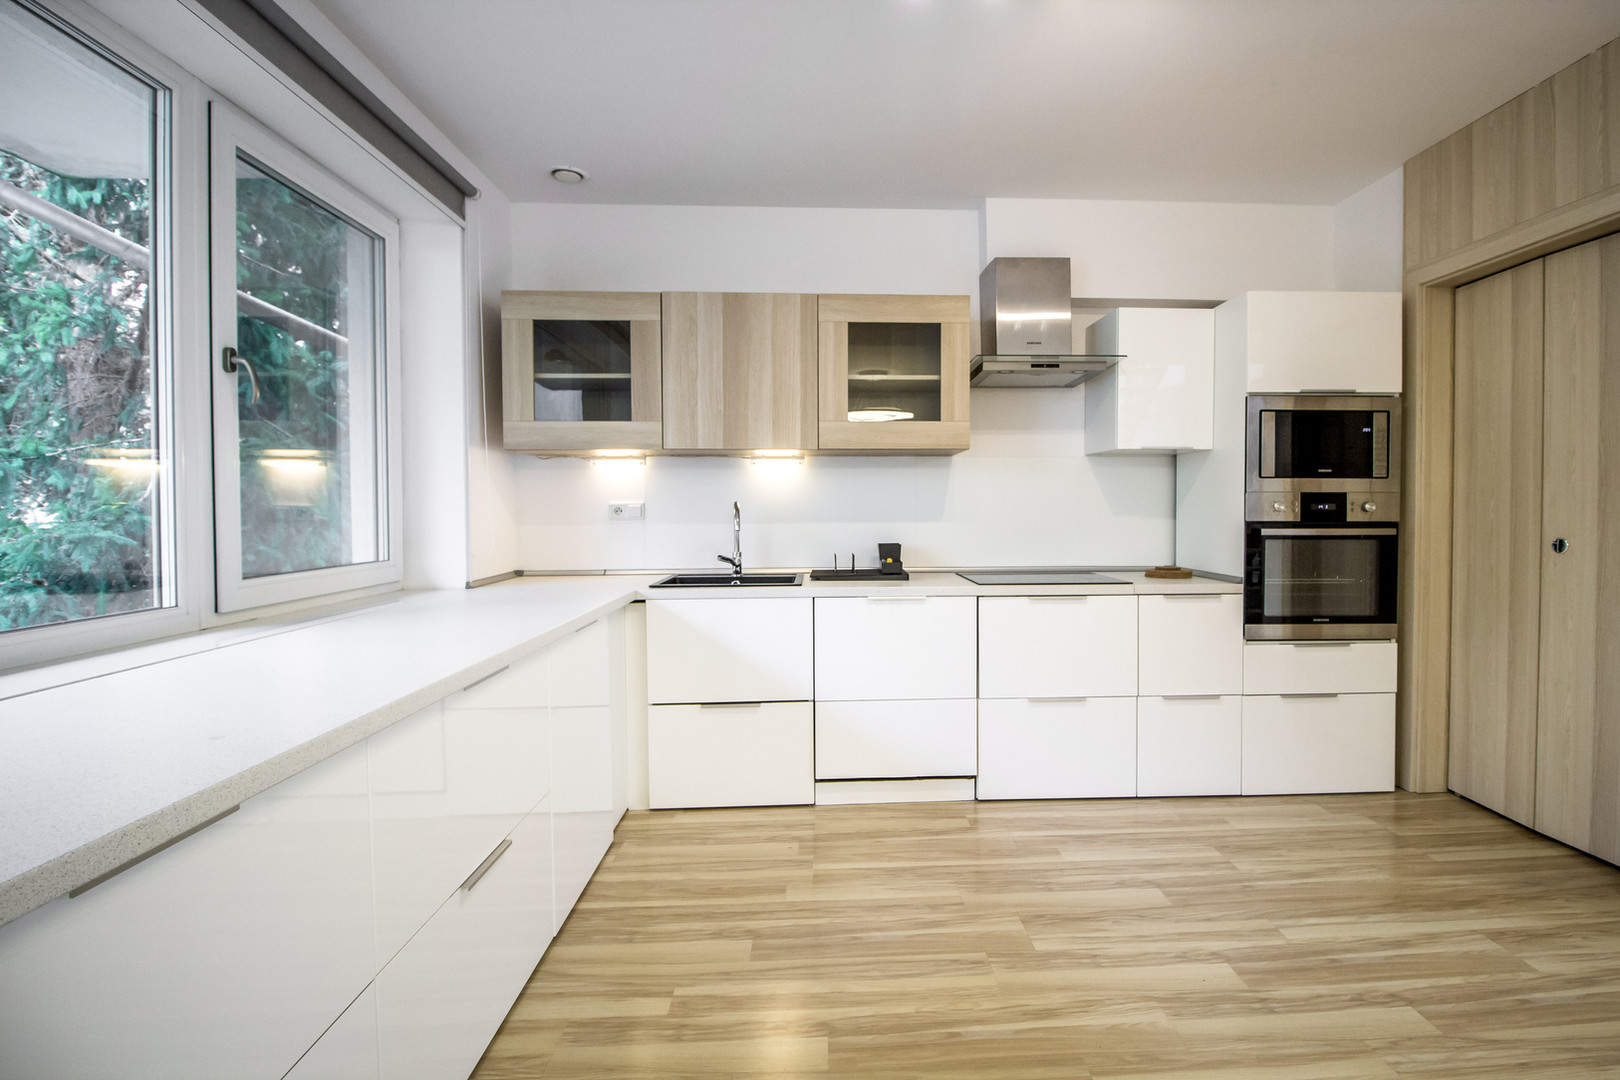 House for rent Poznan Poland (22 of 31).